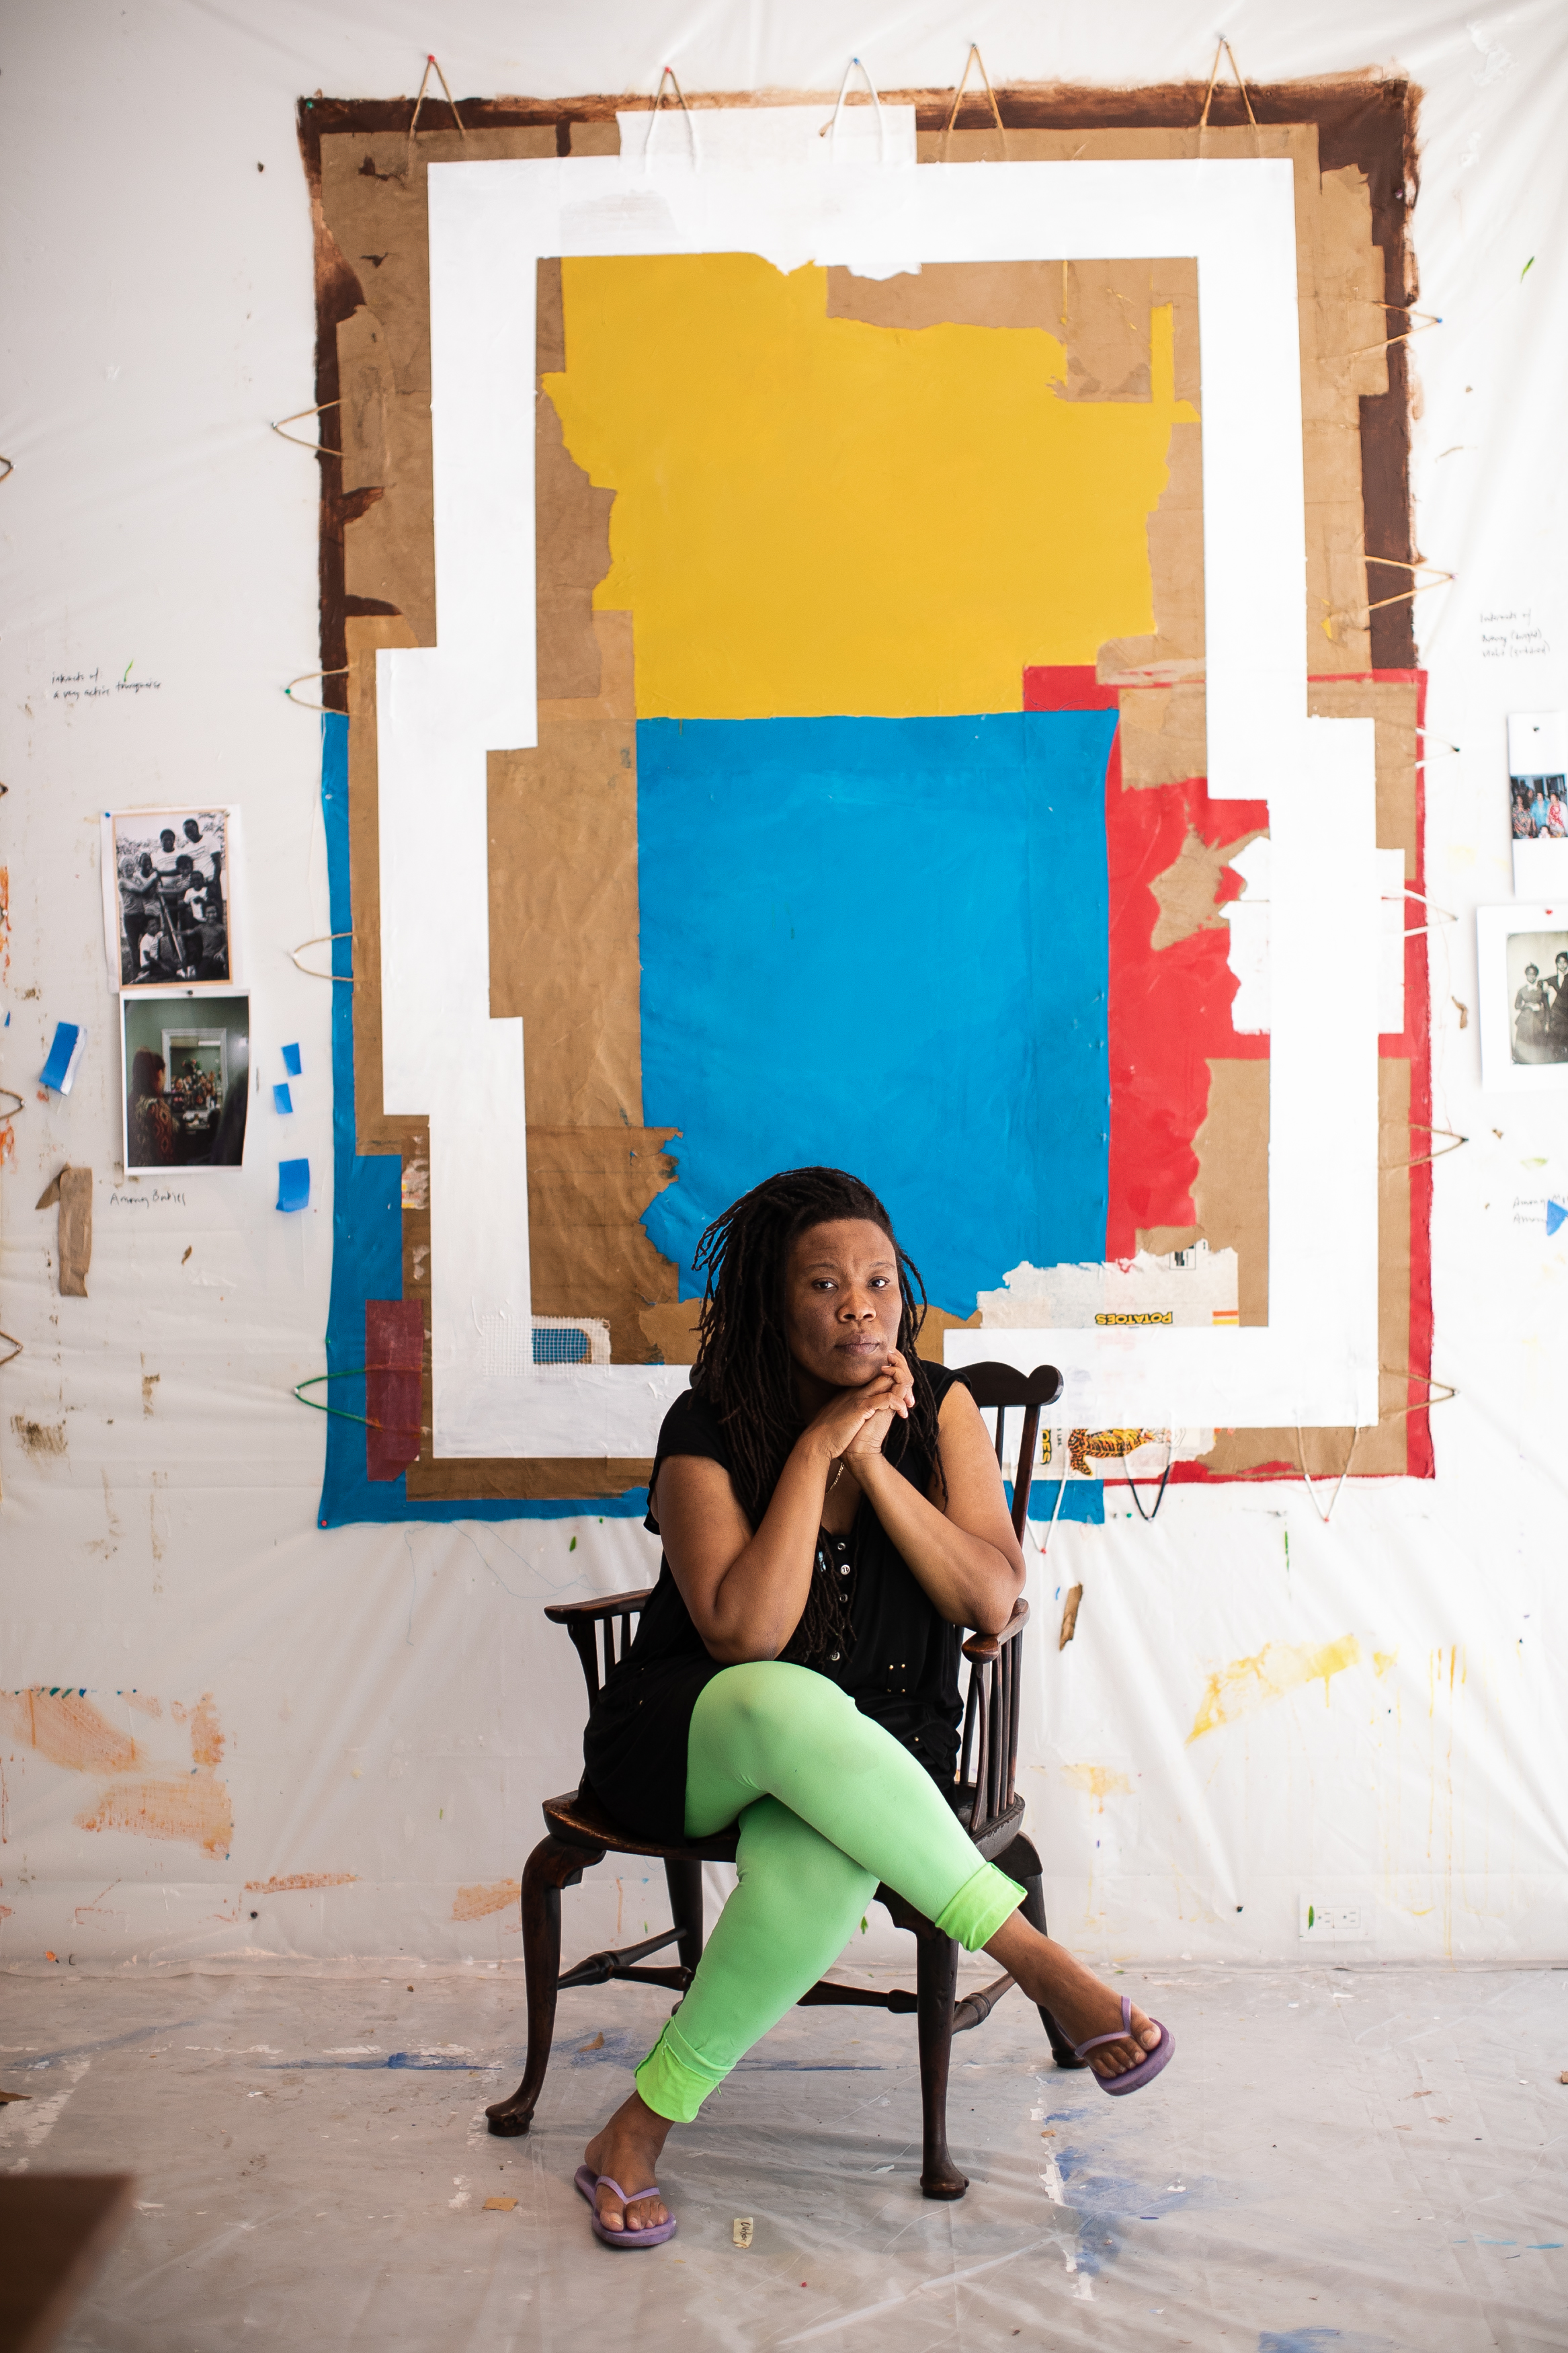 Tomashi Jackson (born 1980, Houston, TX) in her studio at The Watermill Center, June 2021. Photo: Copyright Jessica Dalene, courtesy of The Watermill Center.